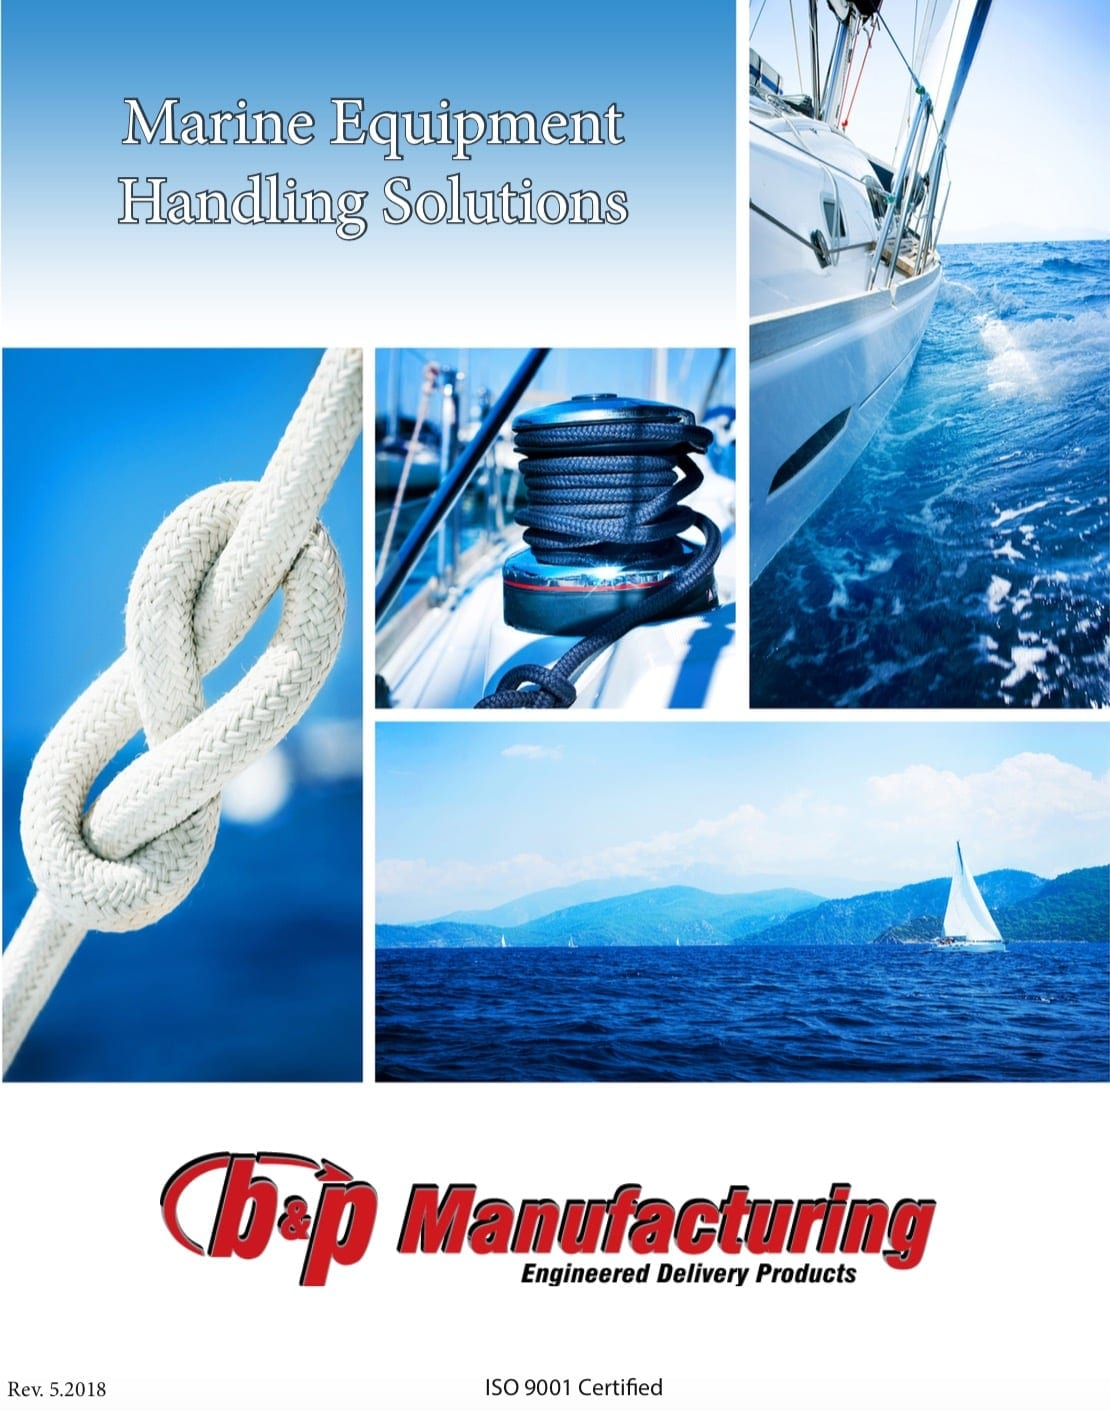 Marine Equipment Handling